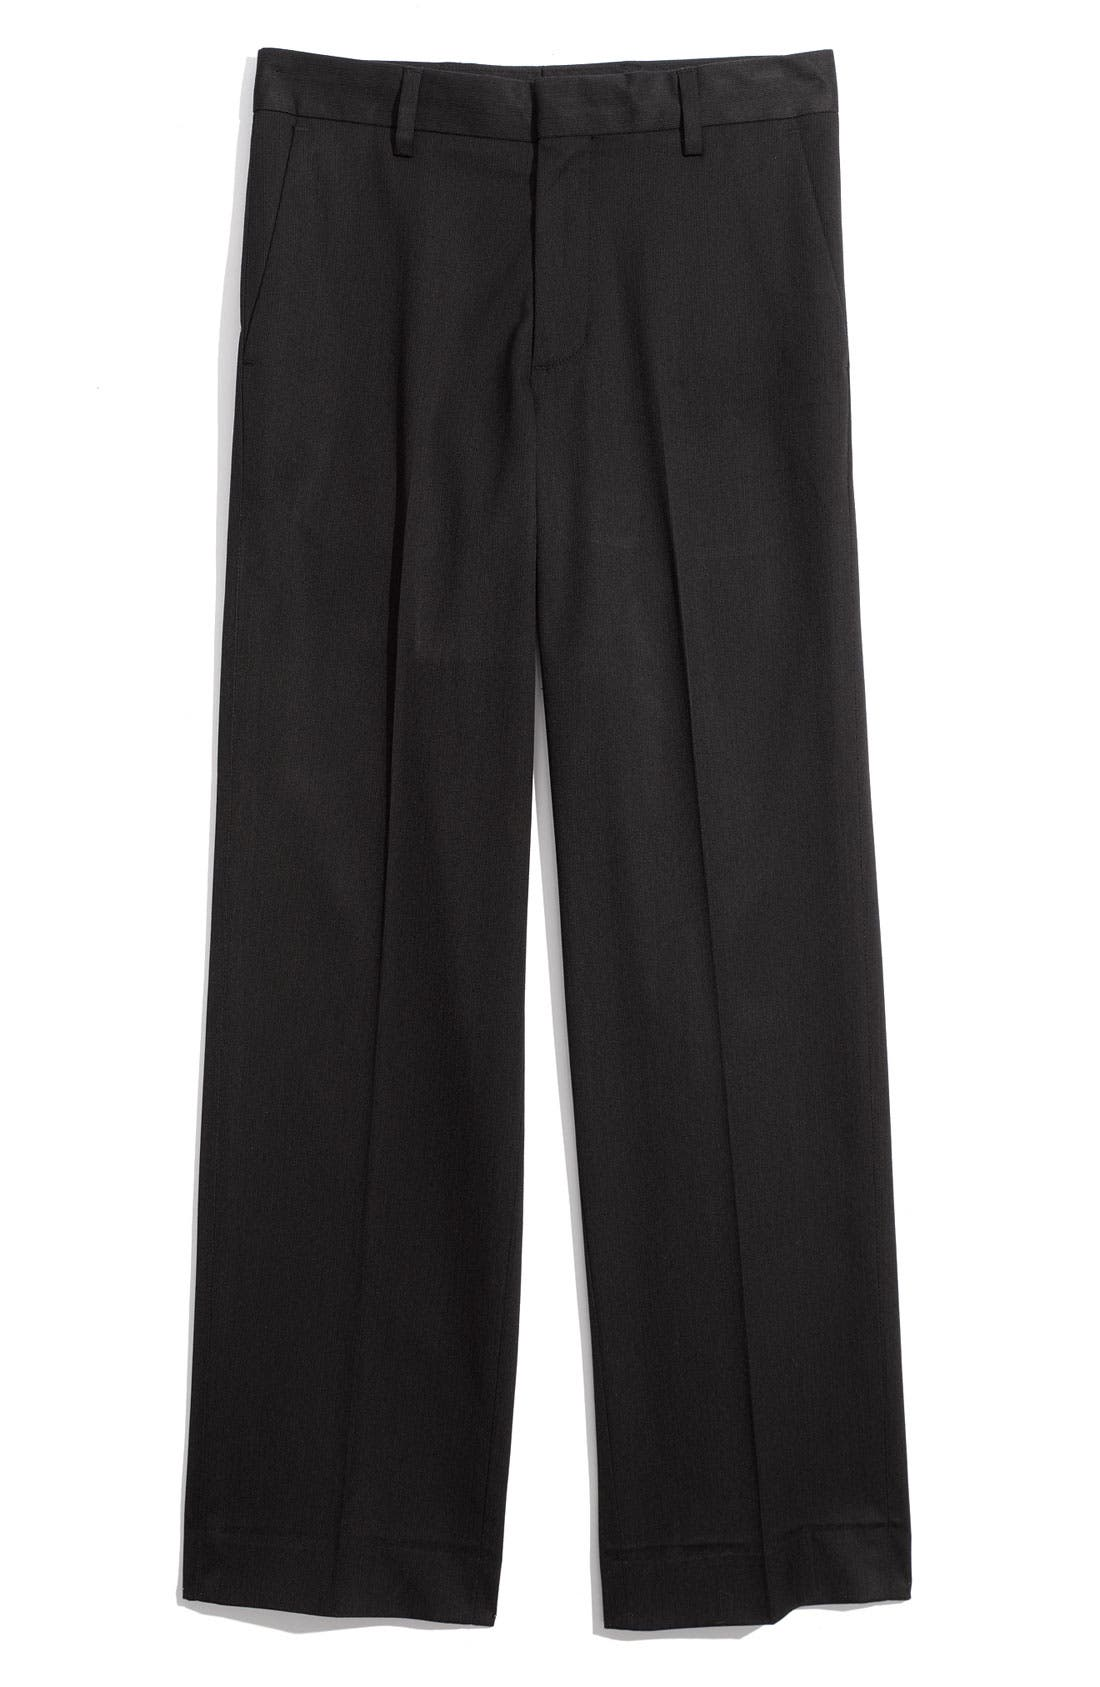 Alternate Image 1 Selected - C2 by Calibrate Flat Front Slim Pants (Big Boys)